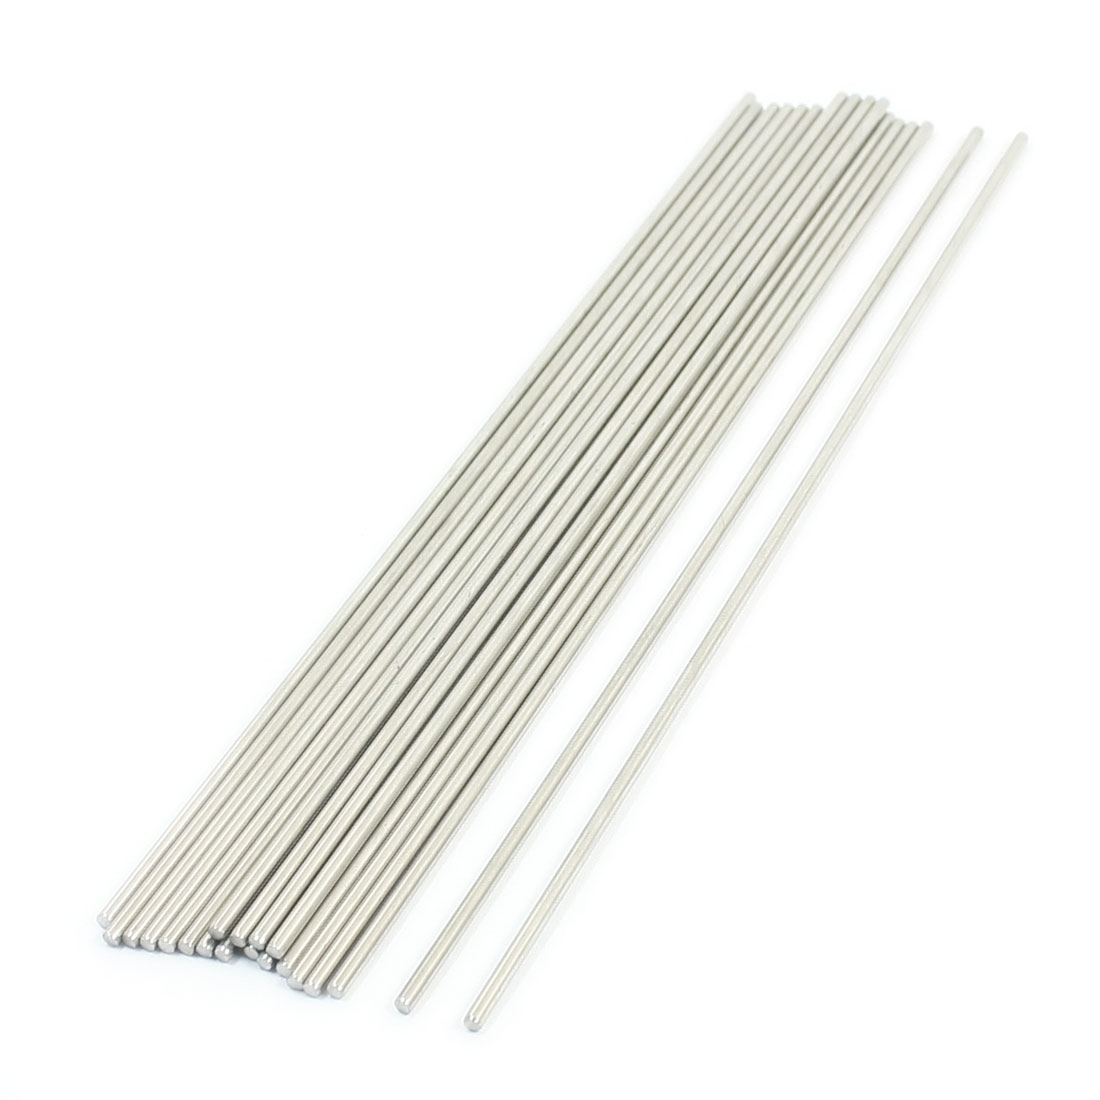 20PCS 170mm x 2mm Stainless Steel Round Rod Axle Bars for RC Toys